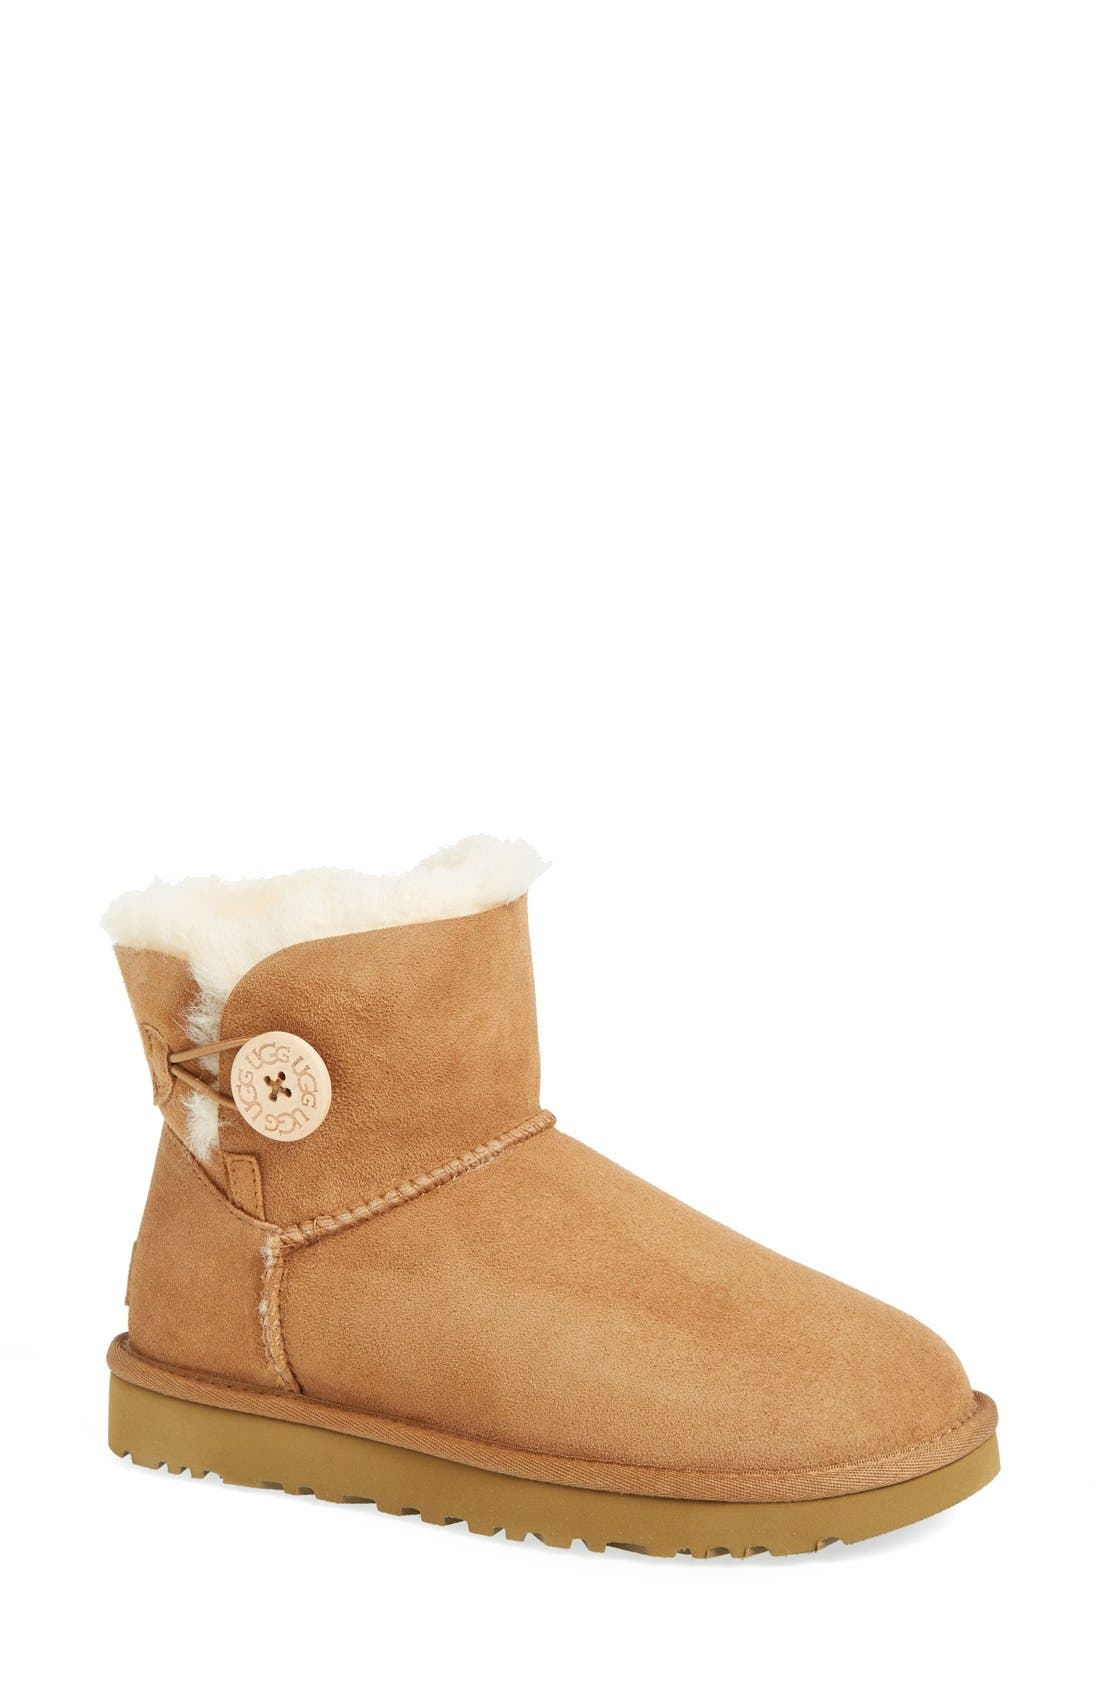 UGG Mini Bailey Button Ii Ankle Boots in Brown